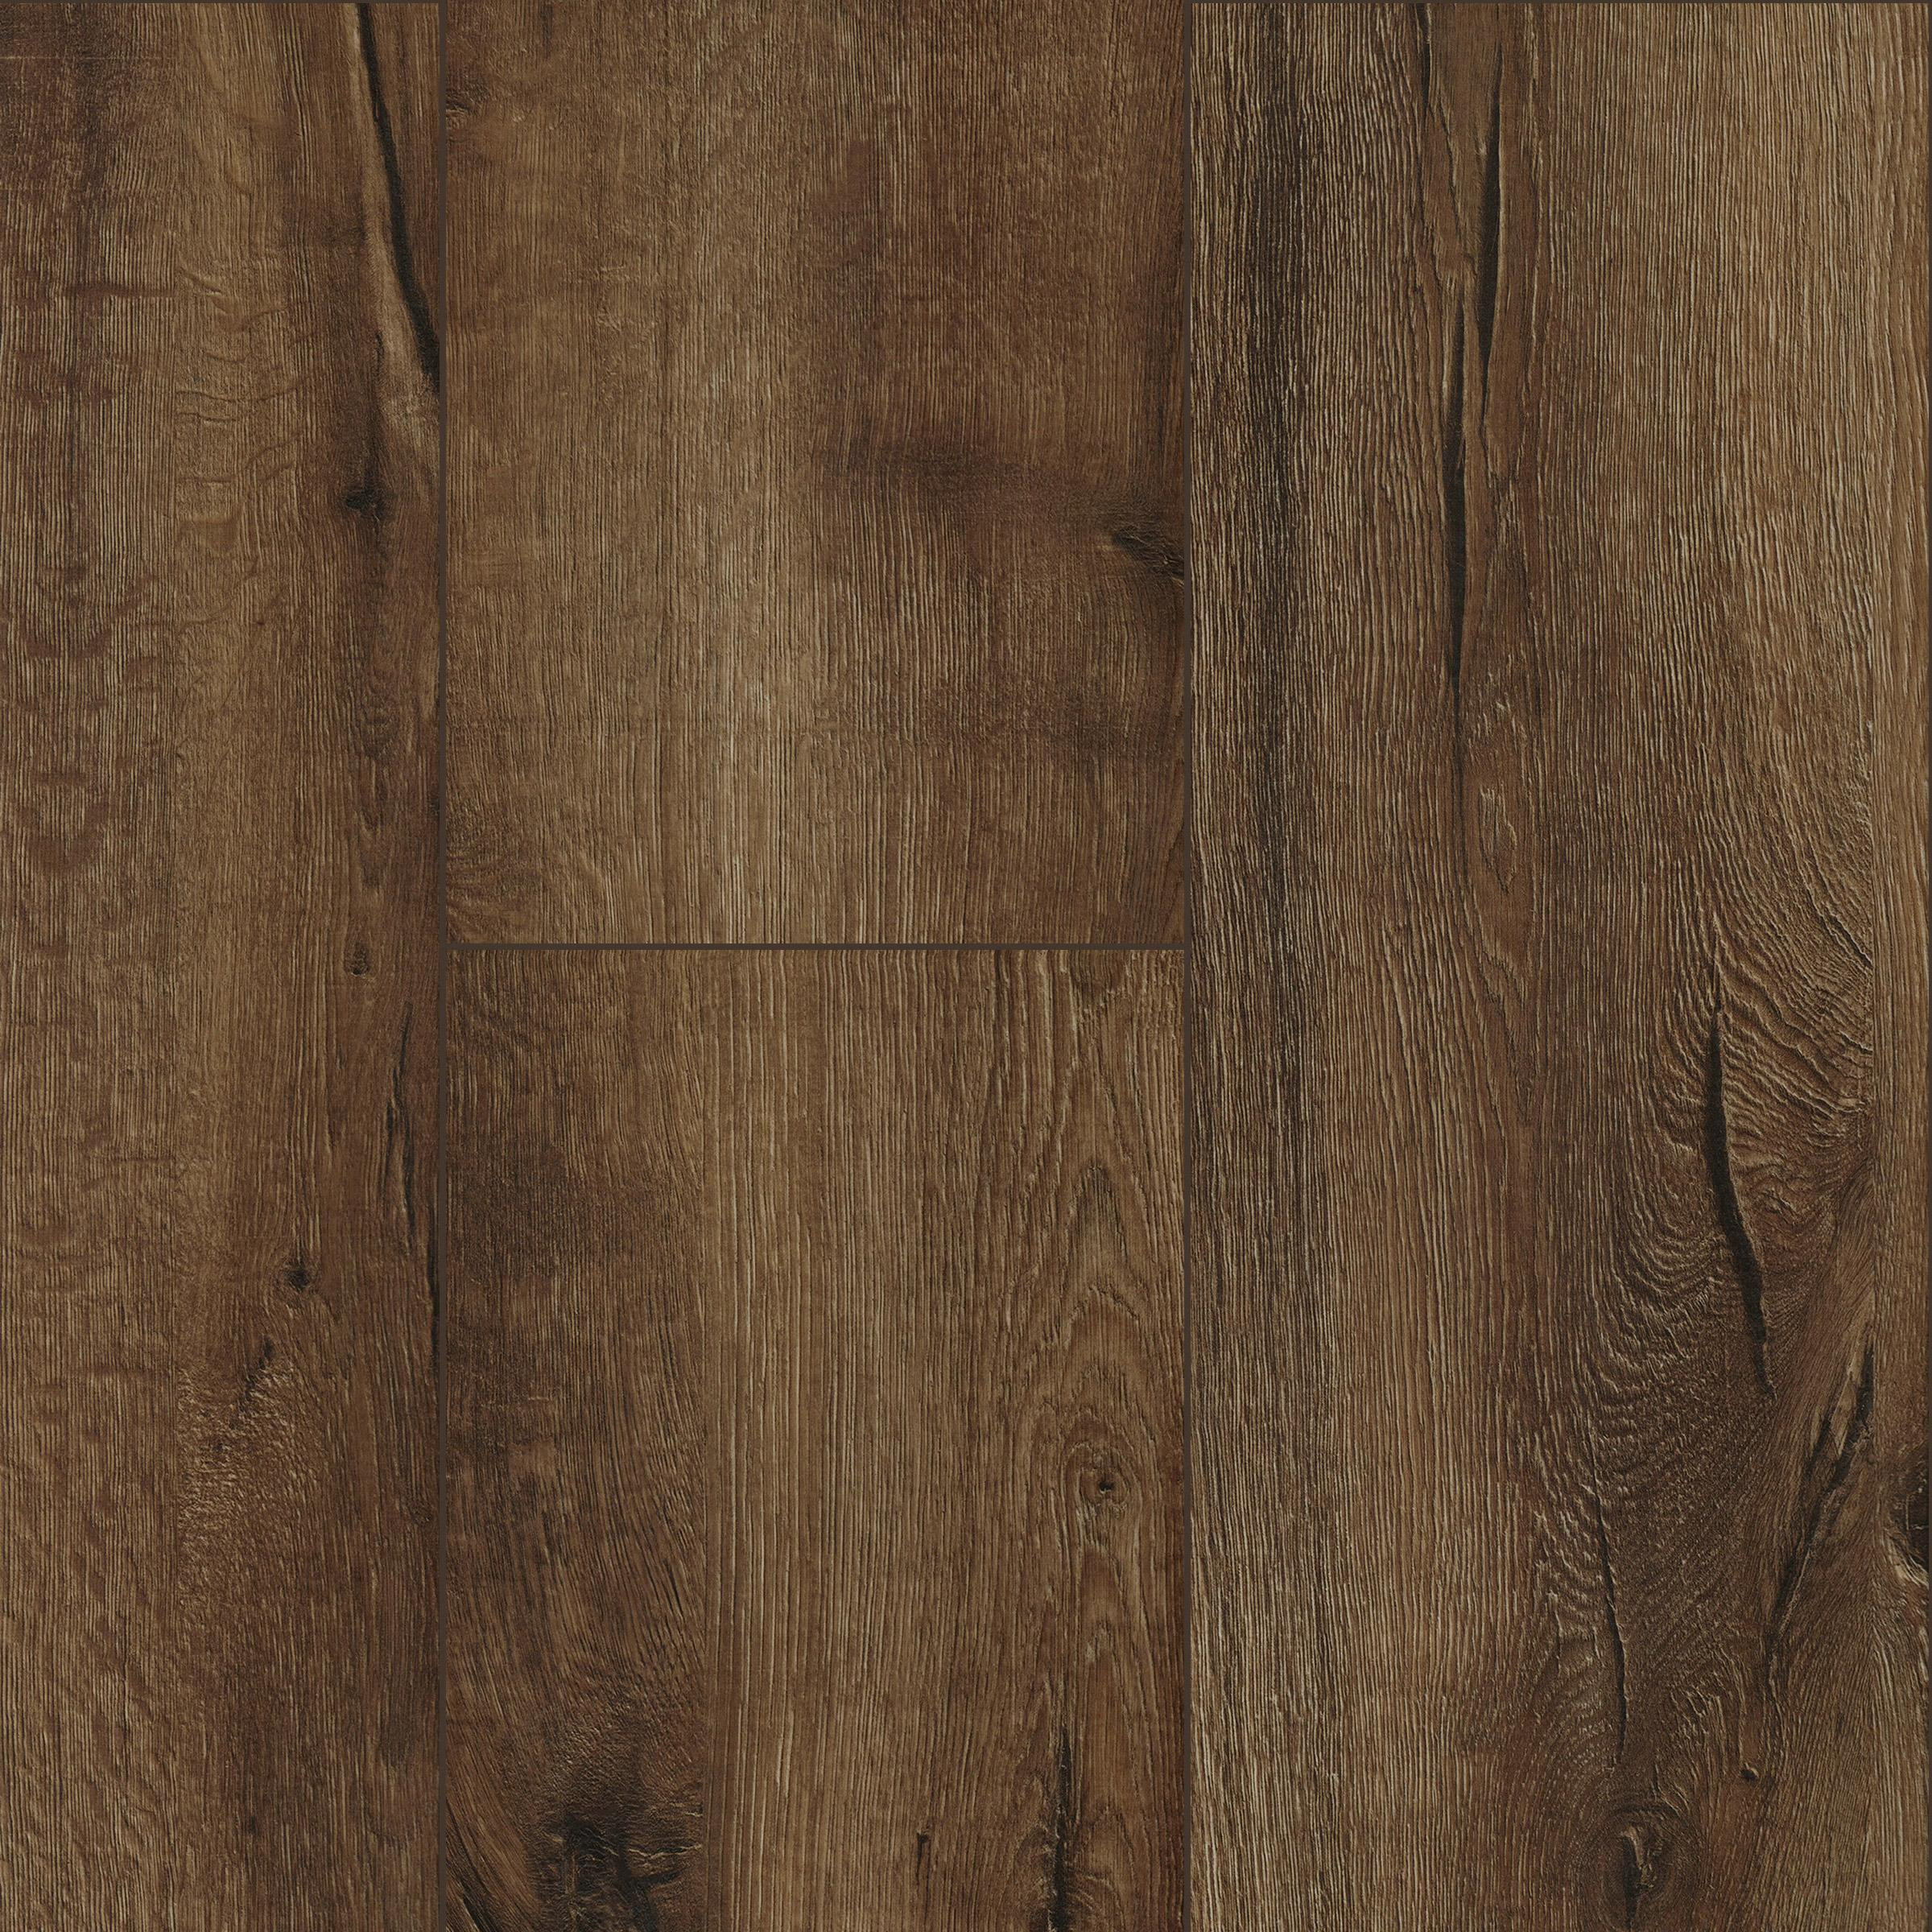 11 Fabulous Mohawk Hardwood Floor Cleaner 2021 free download mohawk hardwood floor cleaner of mohawk monticello hickory 9 wide glue down luxury vinyl plank flooring pertaining to 360507 9 25 x 59 approved